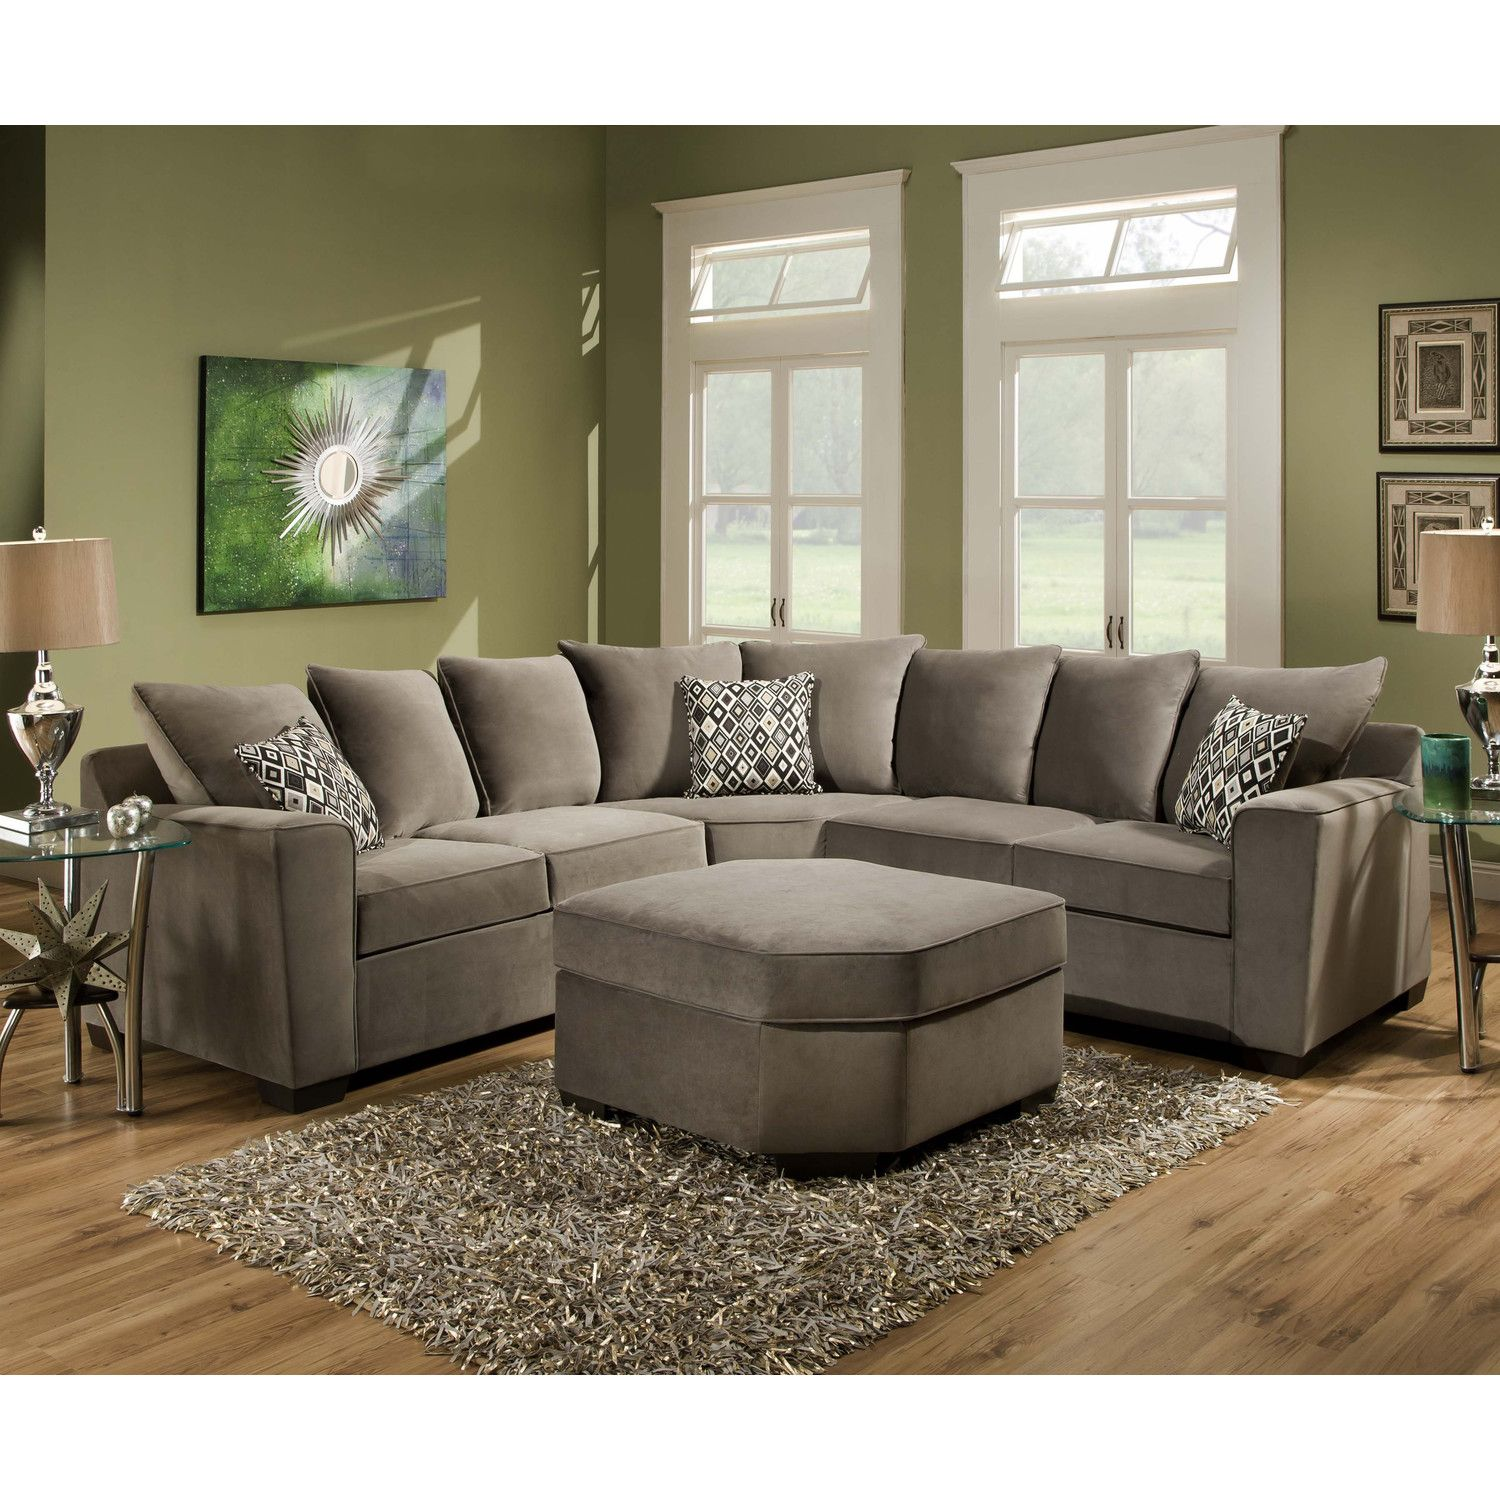 Small Sectional Sofa Design